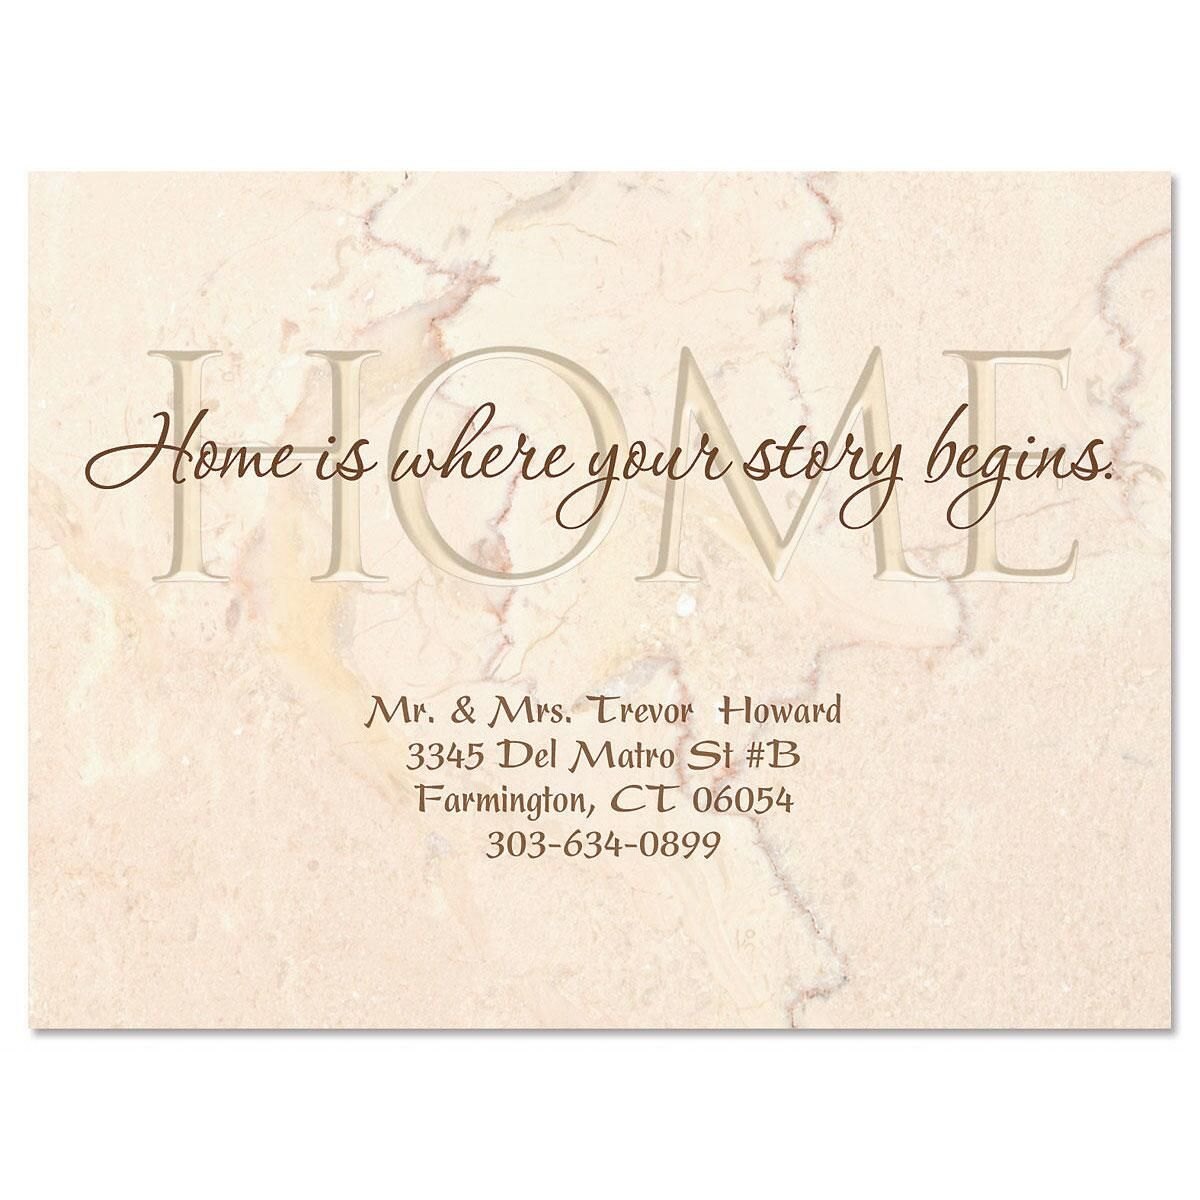 Moving Your Story New Address Postcards